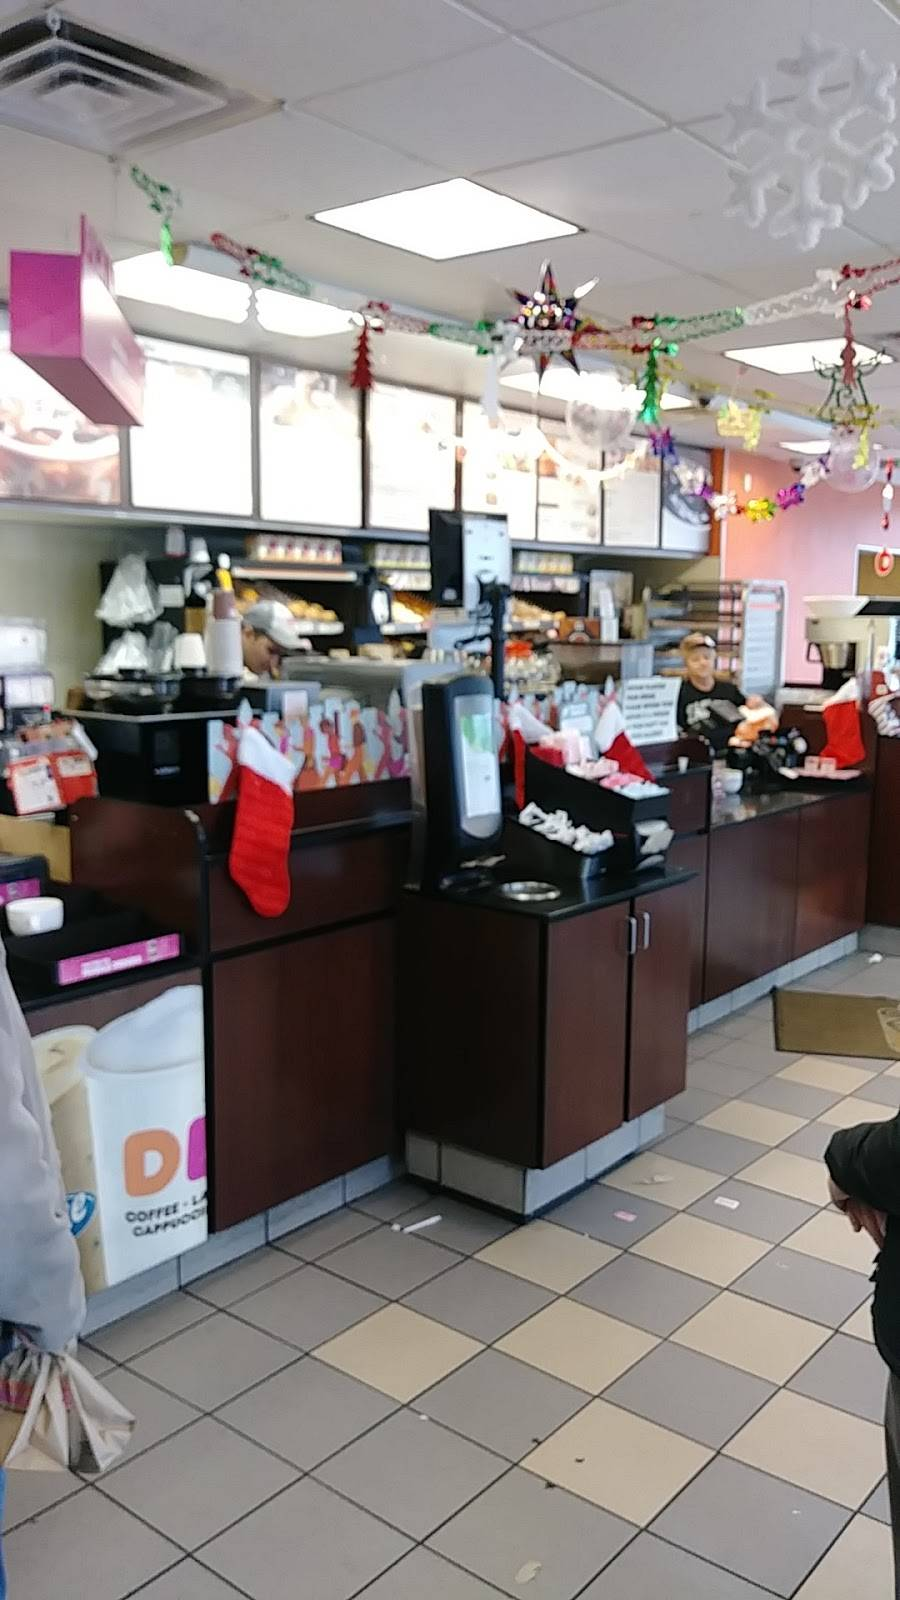 Dunkin | cafe | 1300 MacDade Boulevard, Woodlyn, PA 19094, USA | 6108331302 OR +1 610-833-1302